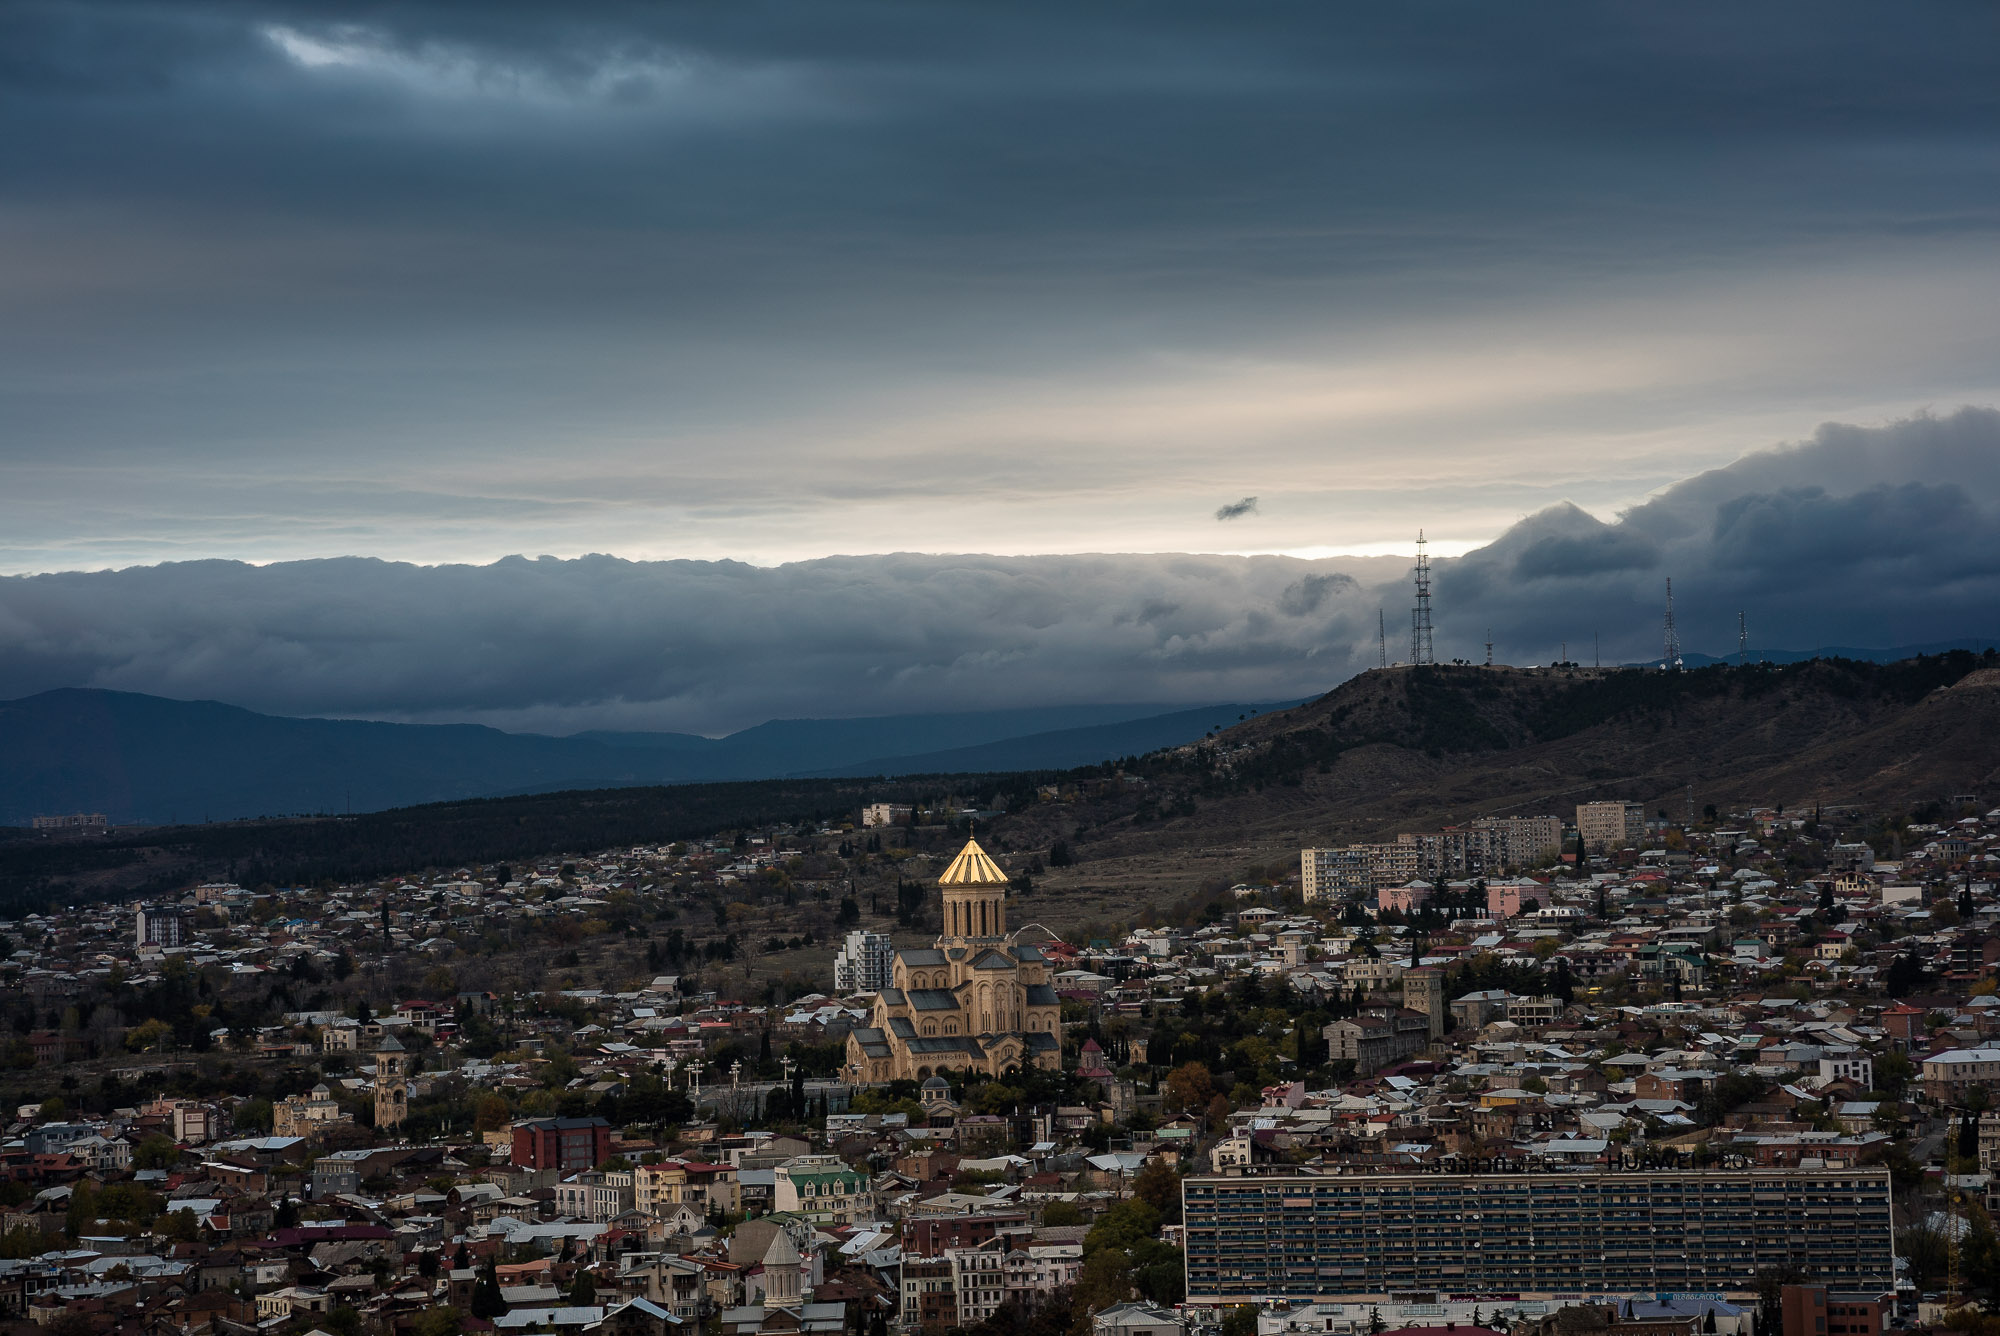 Tbilisi cathedral from afar